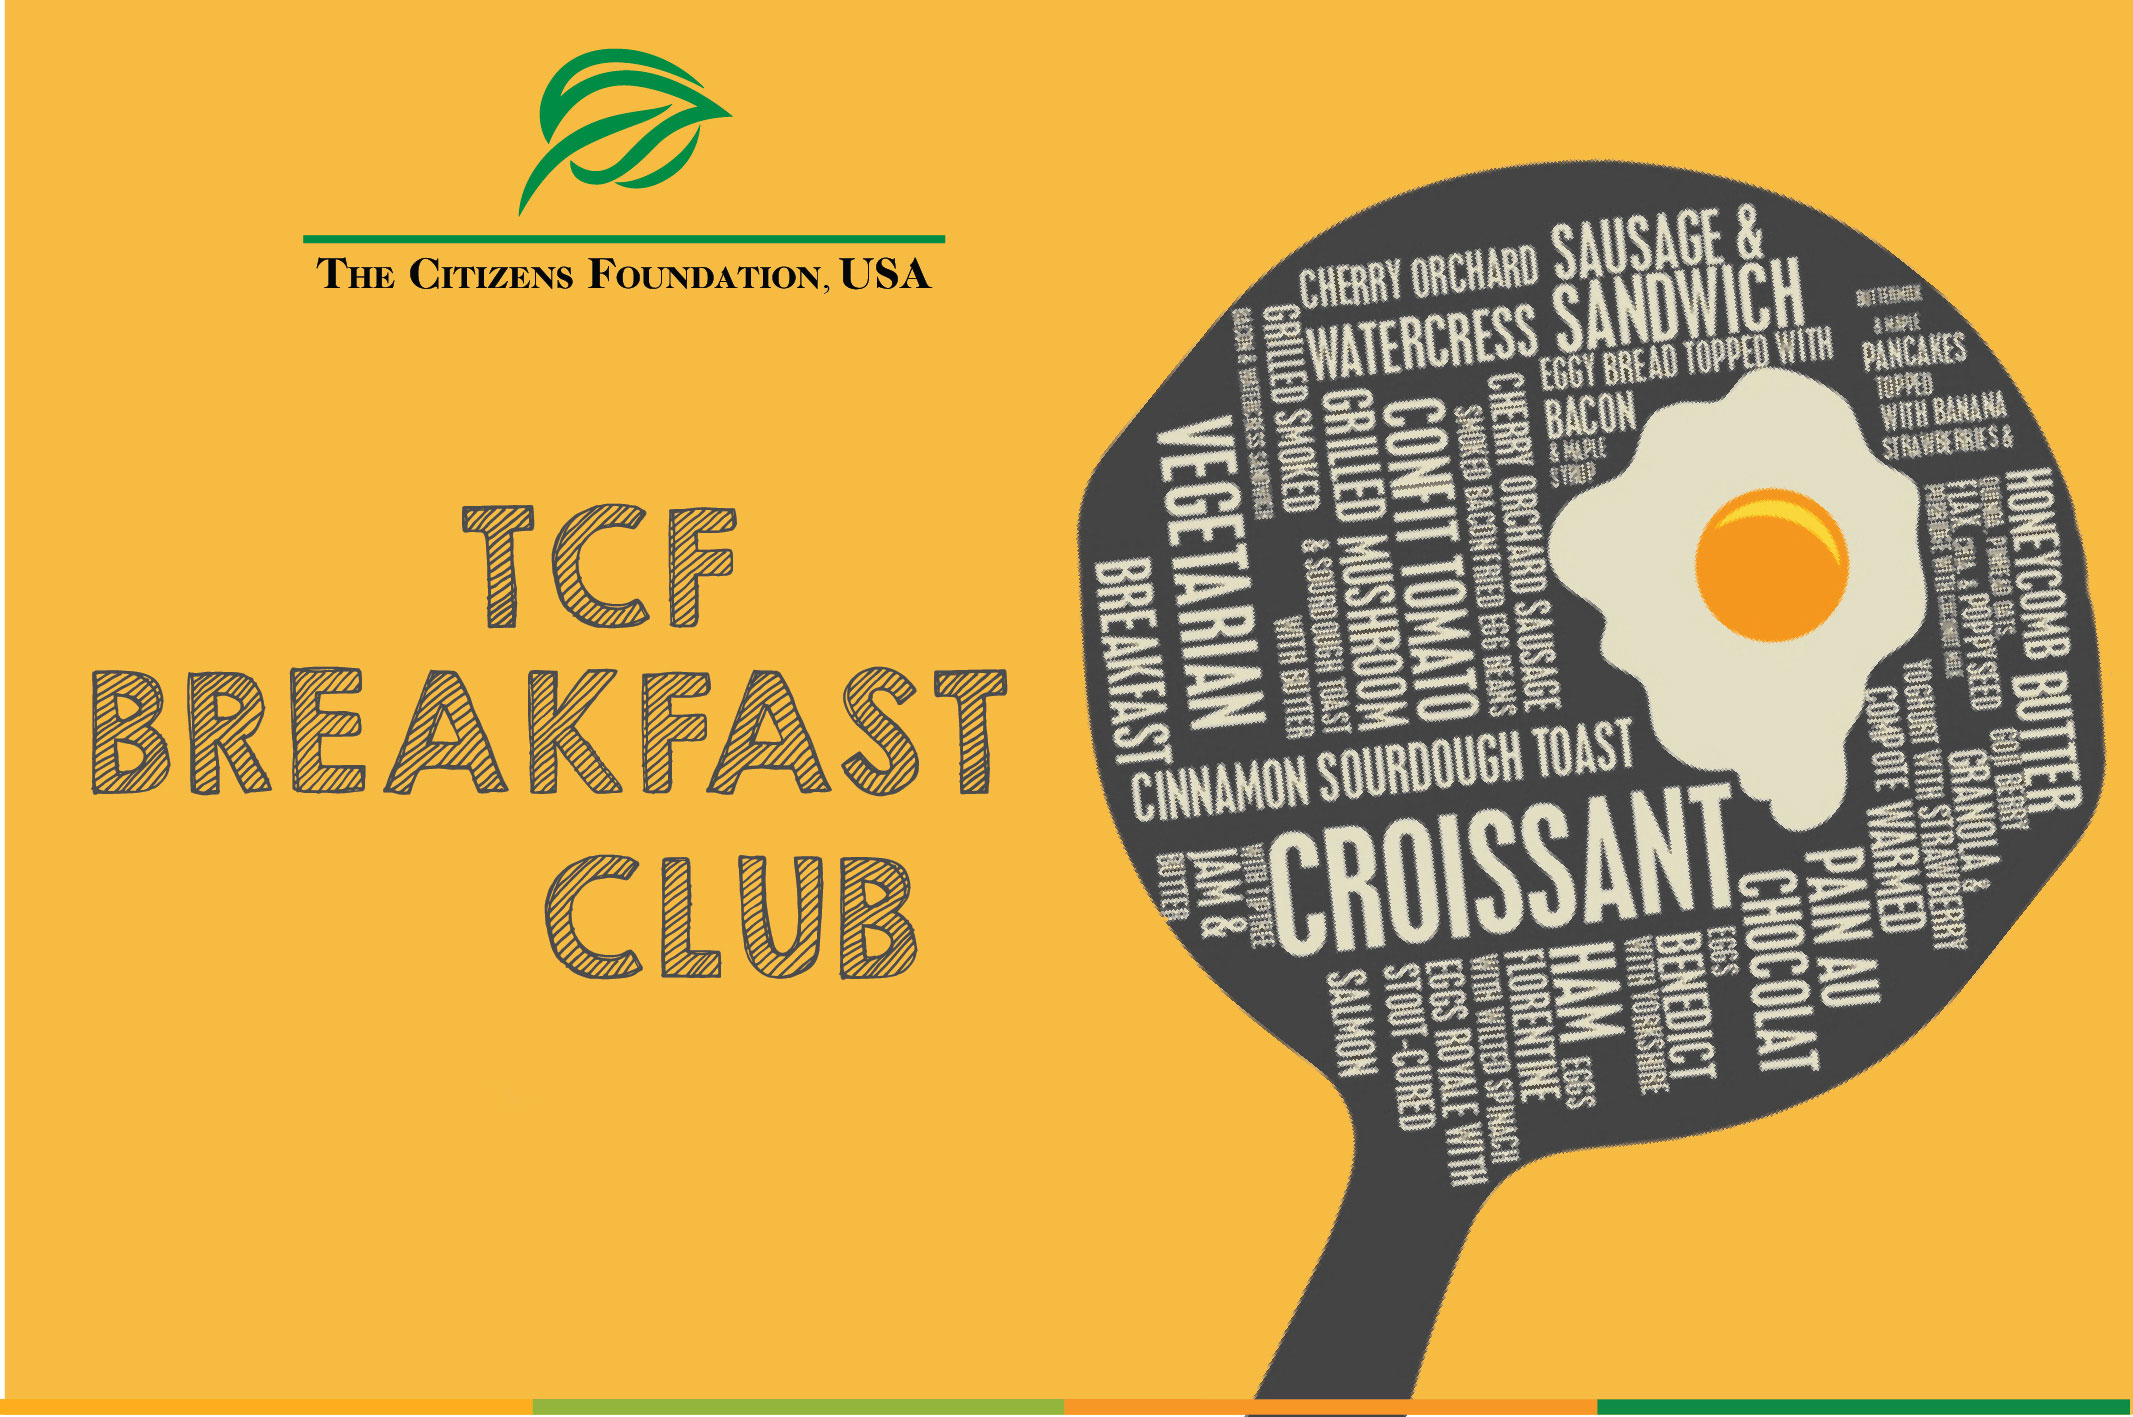 tcf-usa-boston-young-professionals-tcf-breakfast-club-24feb2019_coverphoto